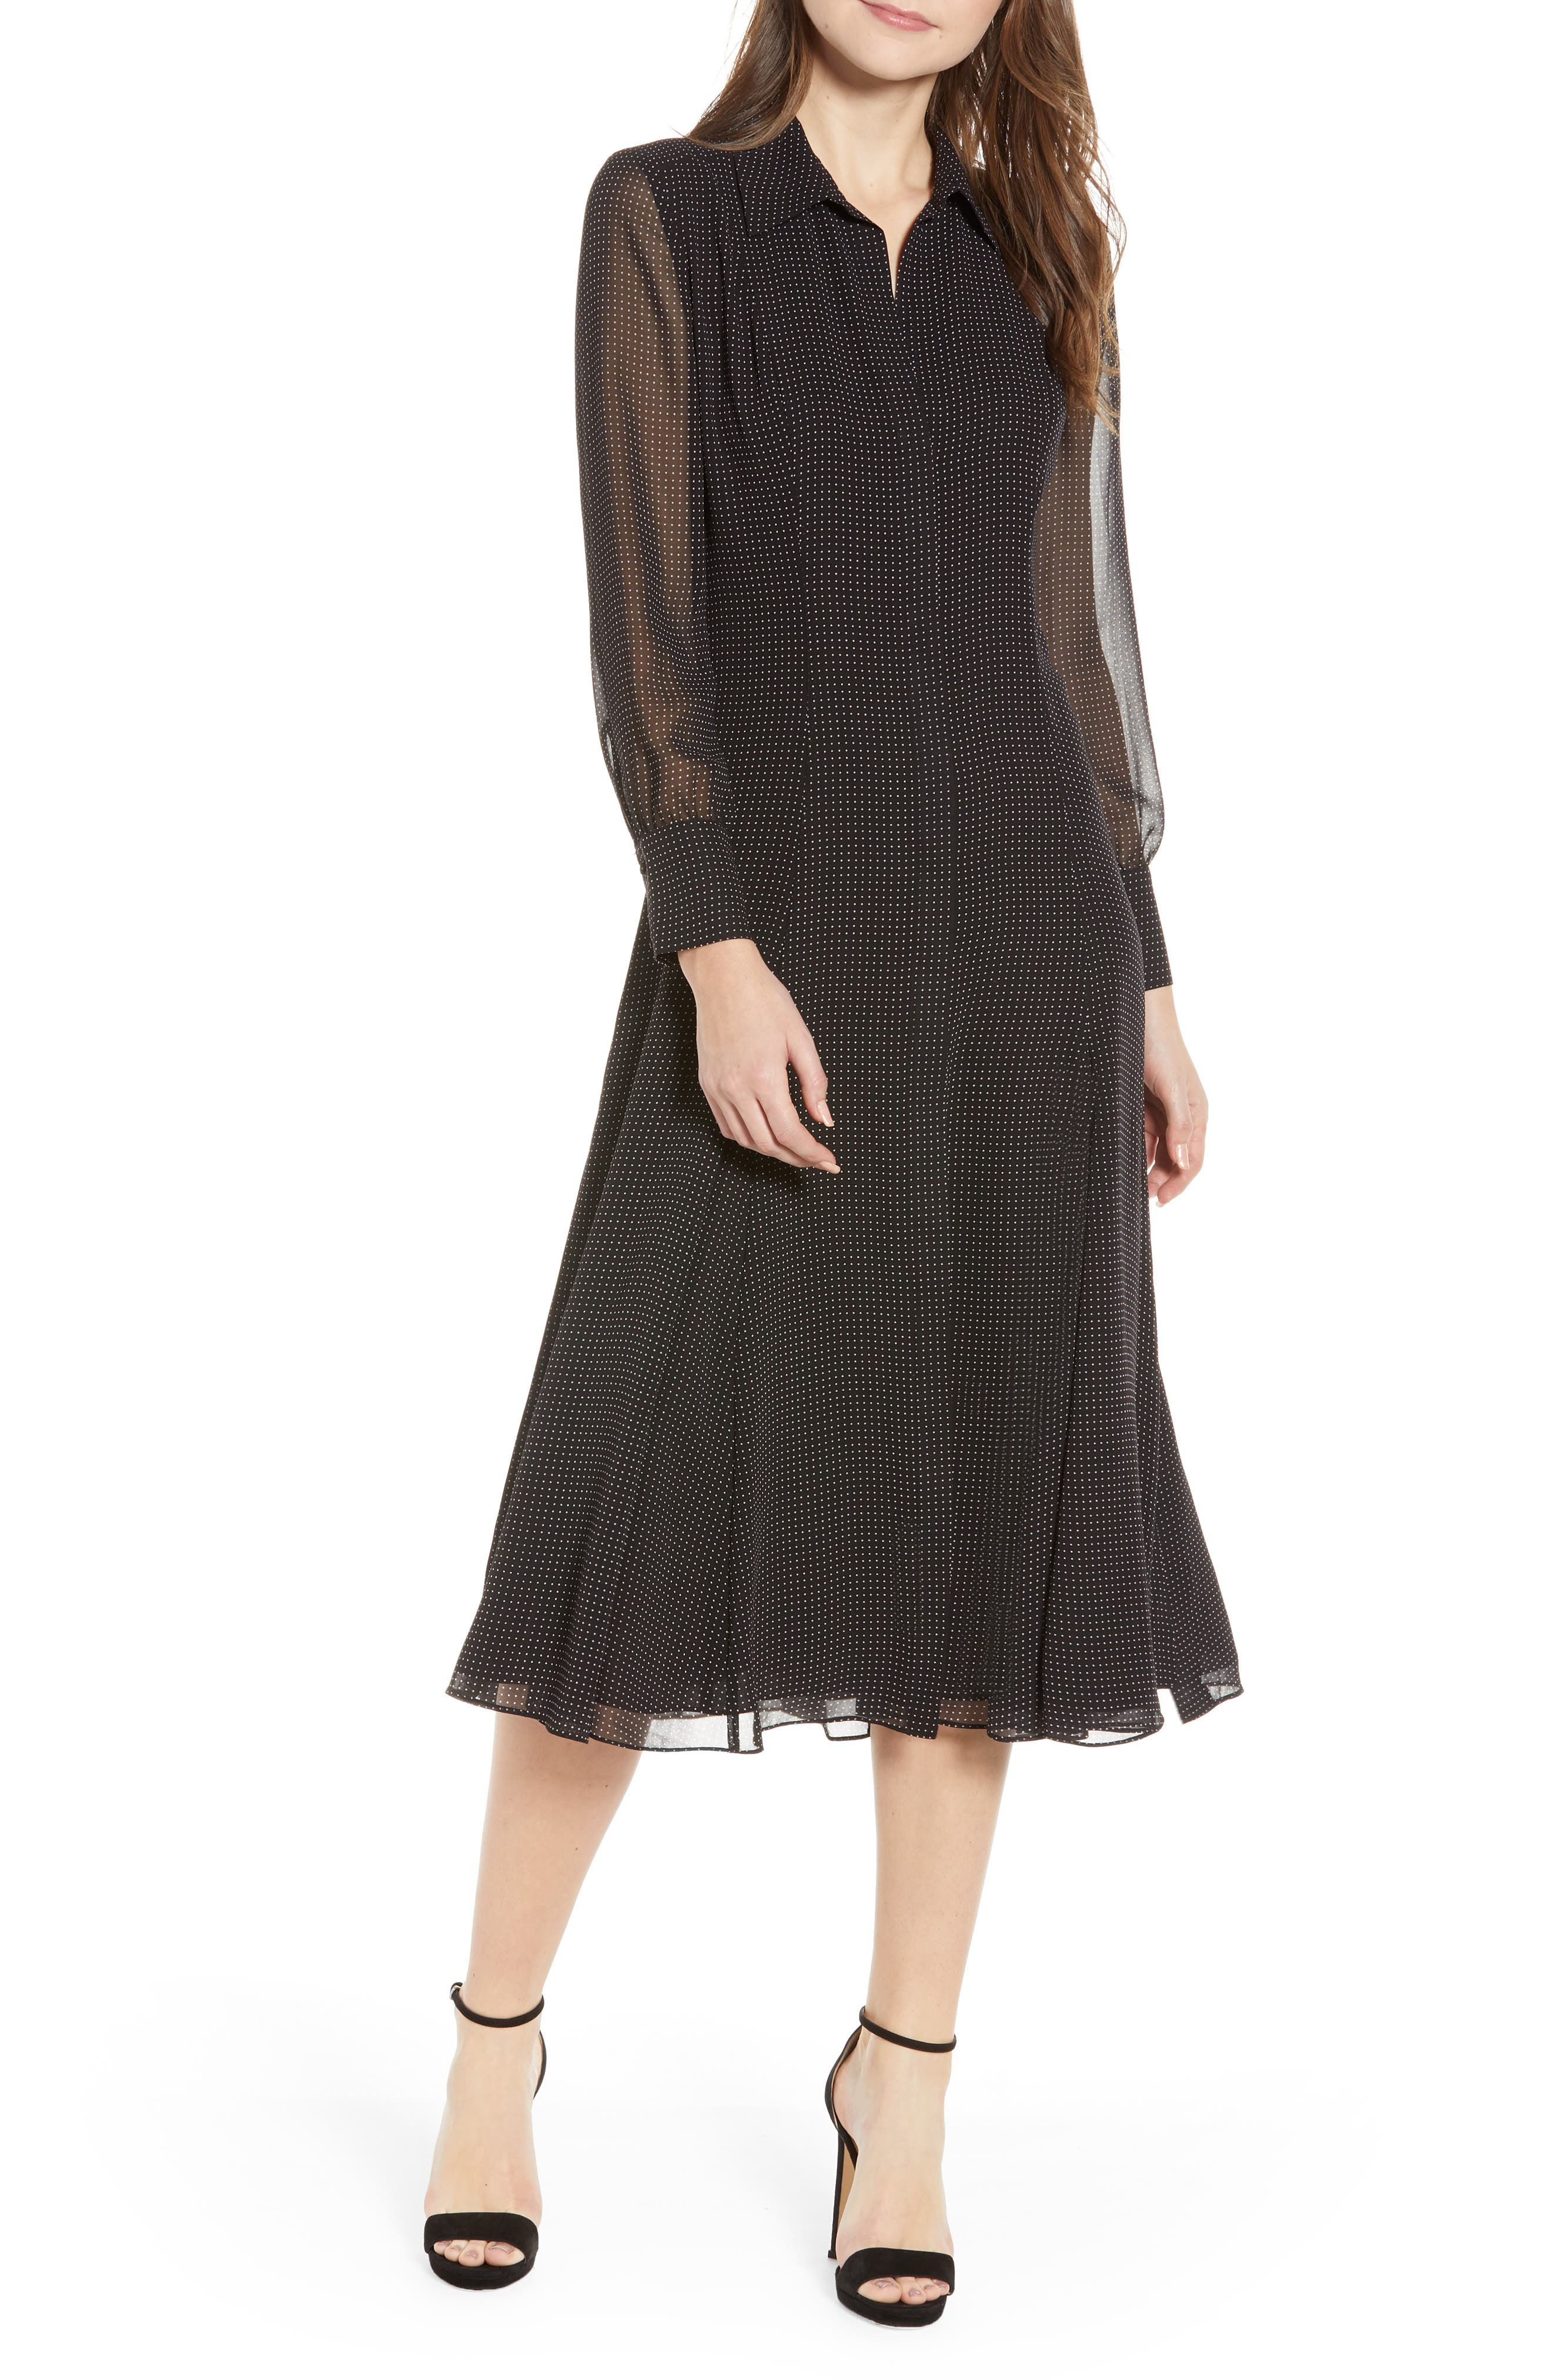 1930s Day Dresses, Afternoon Dresses History Womens Rebecca Minkoff Kimberly Dot Sheer Sleeve Dress $228.00 AT vintagedancer.com